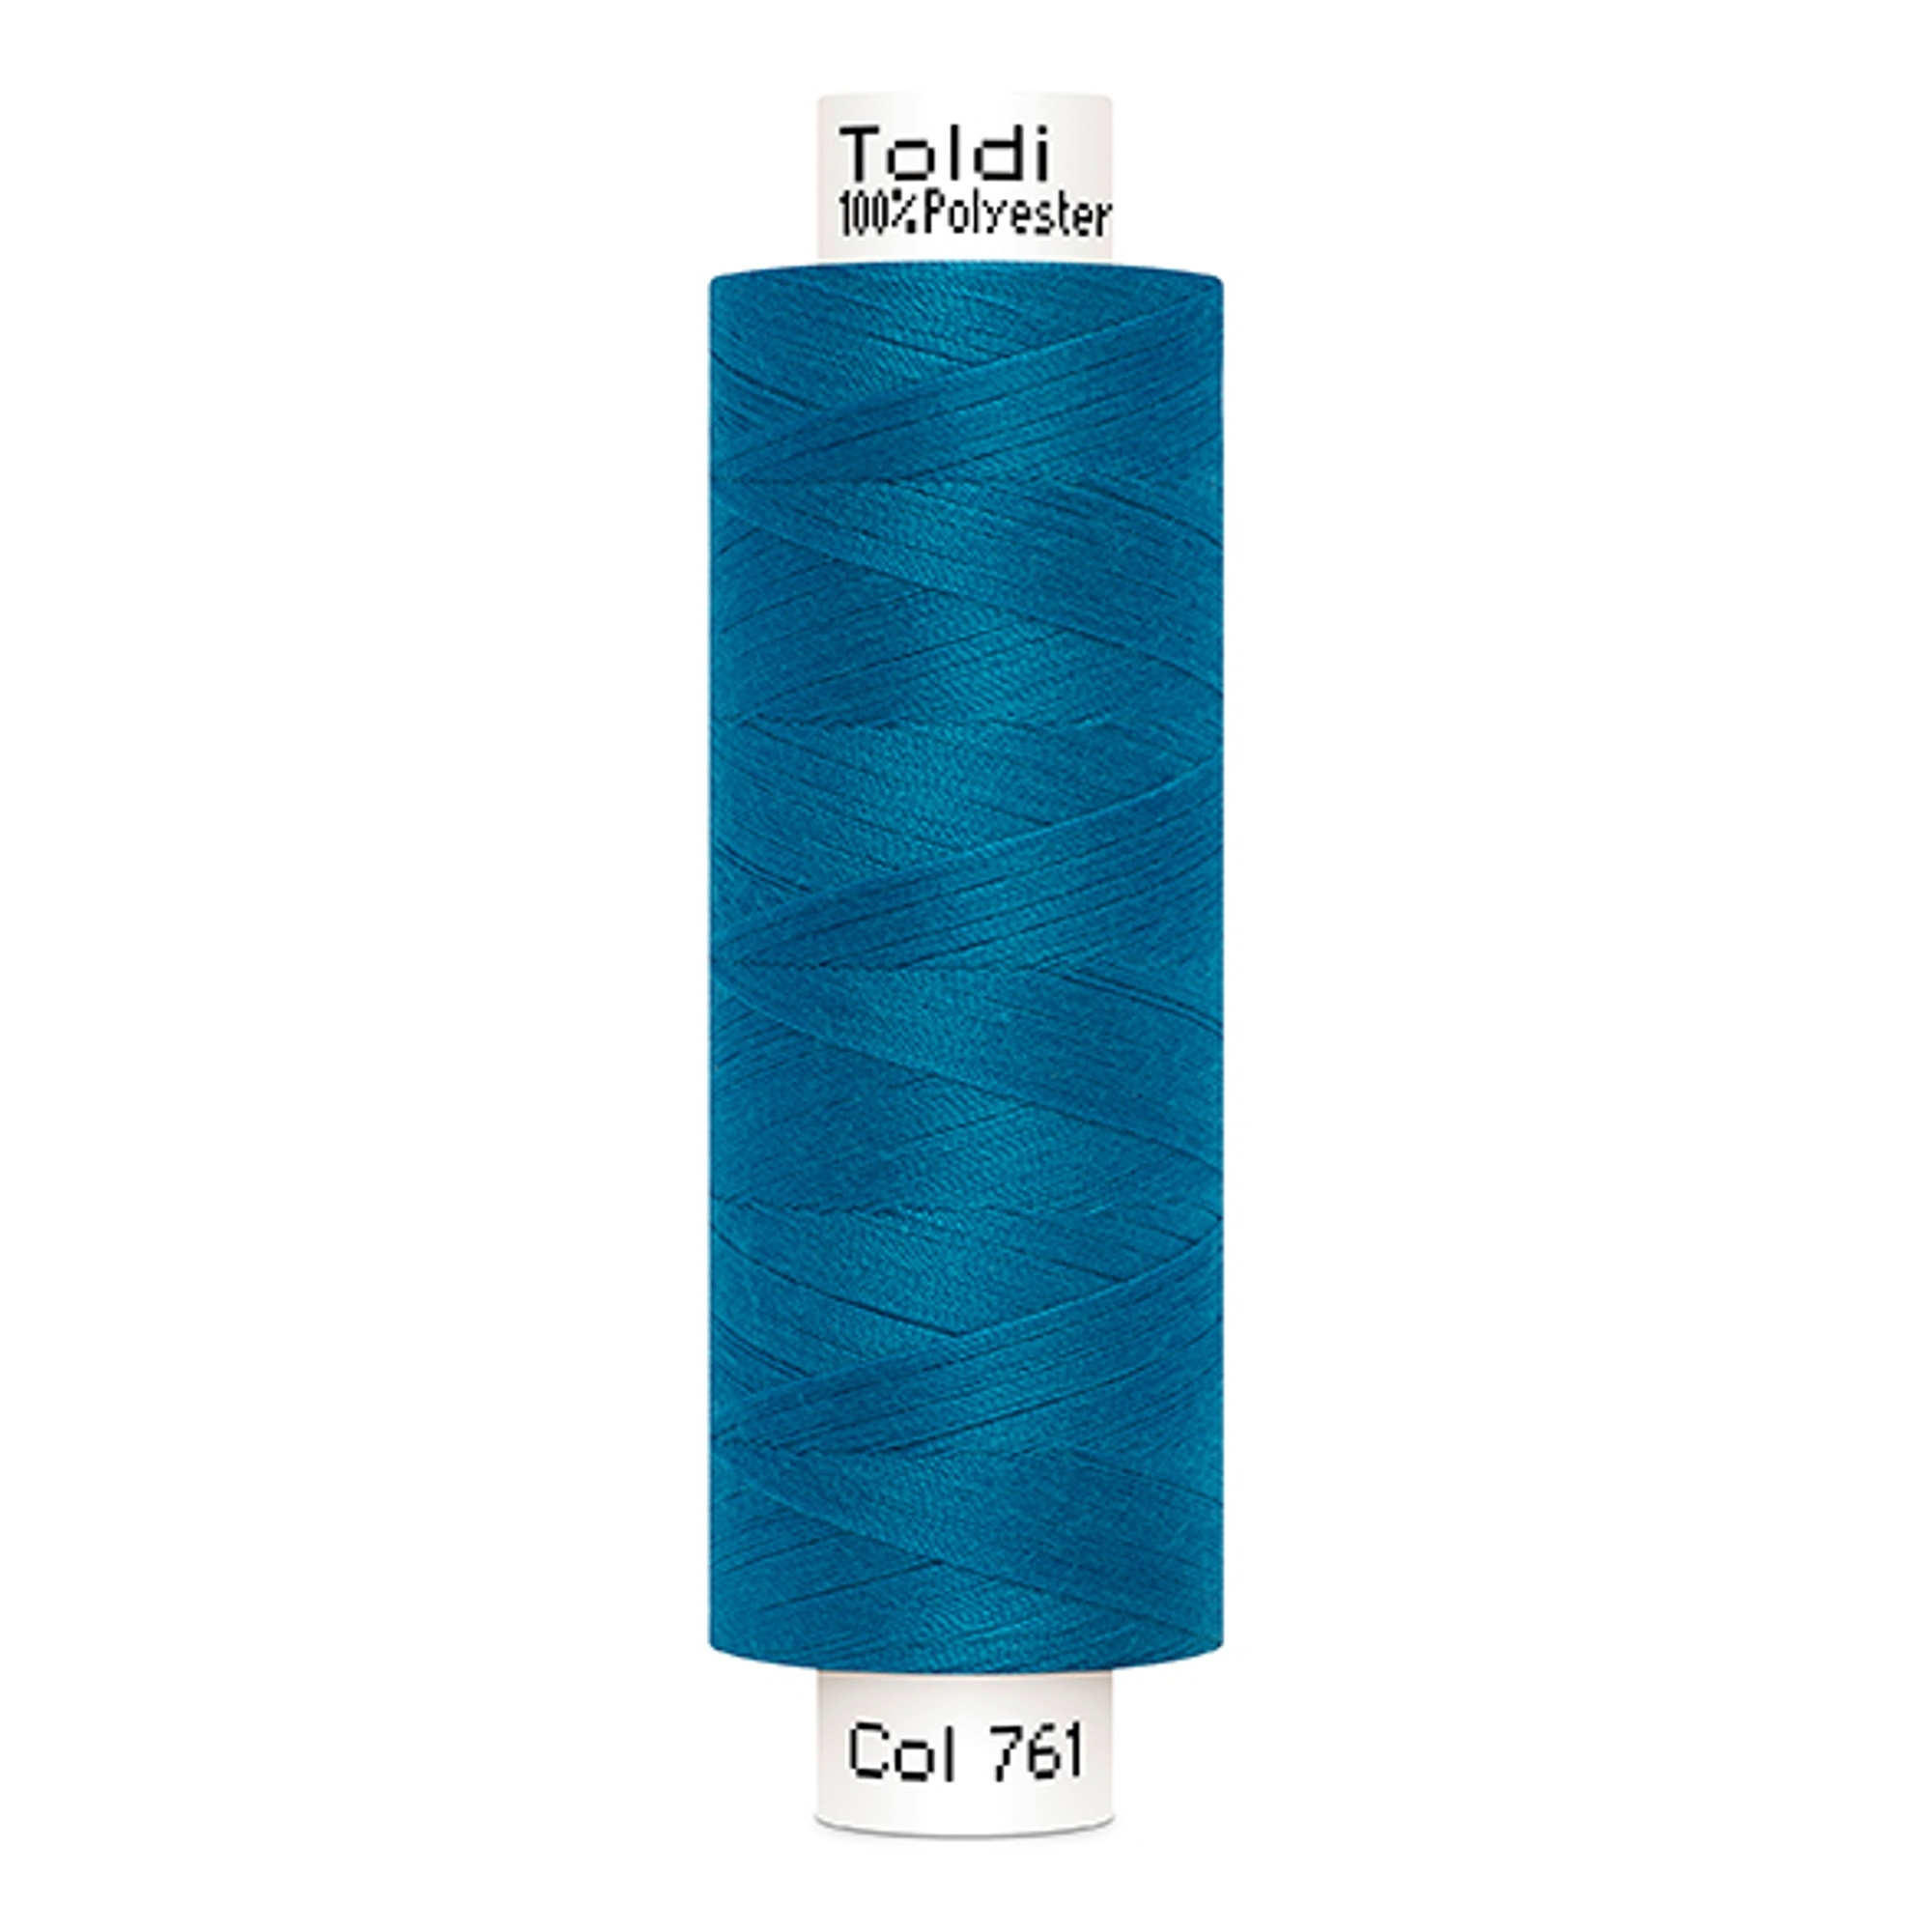 Gütermann Toldi Sewing Thread, 500 m turquoise | 707589-761 | türkis